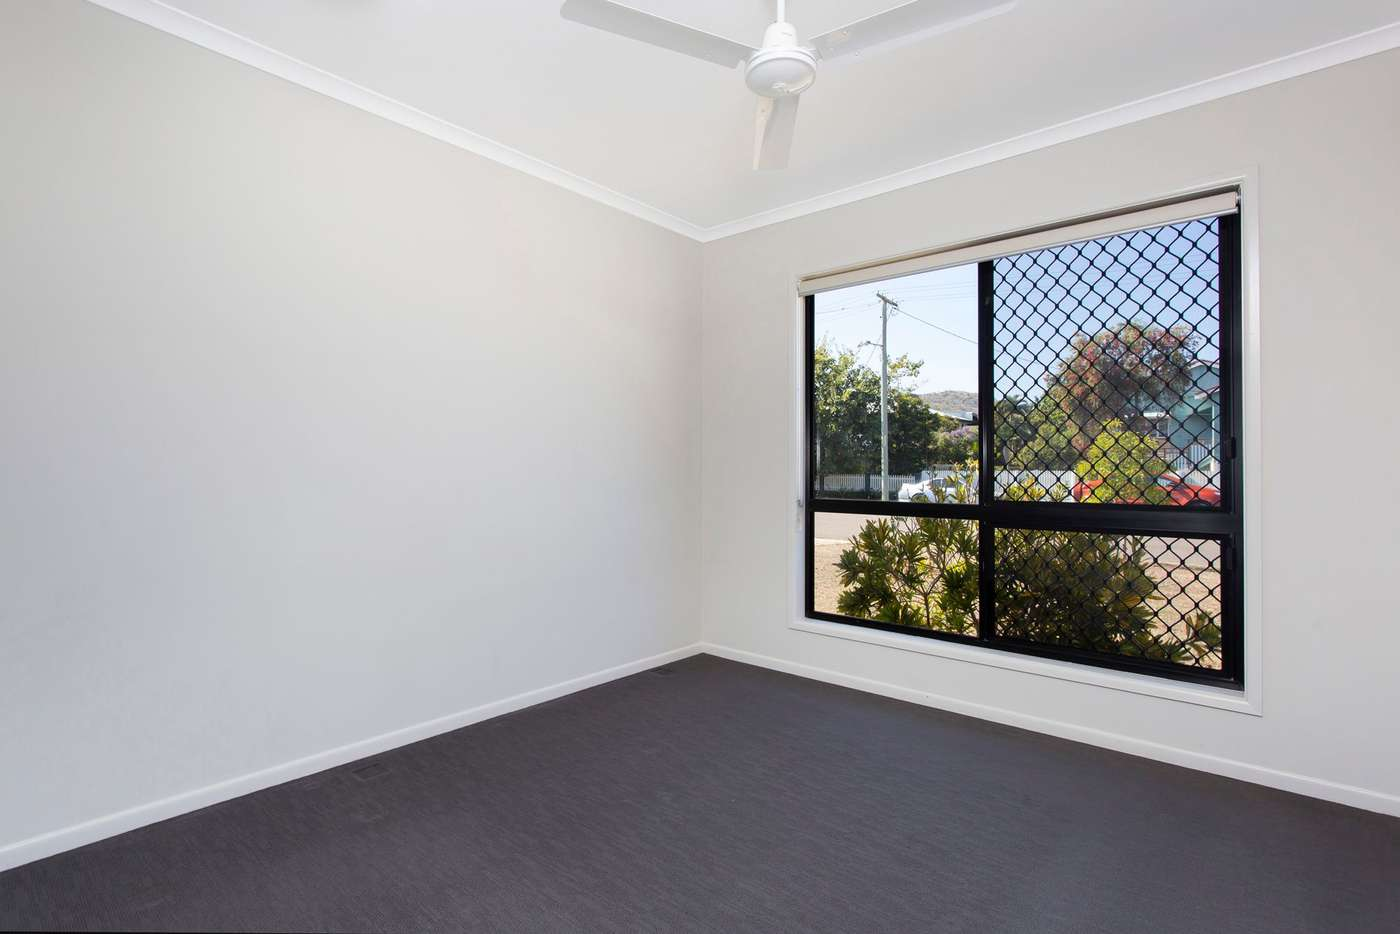 Sixth view of Homely house listing, 2/38 Ahearne Street, Hermit Park QLD 4812